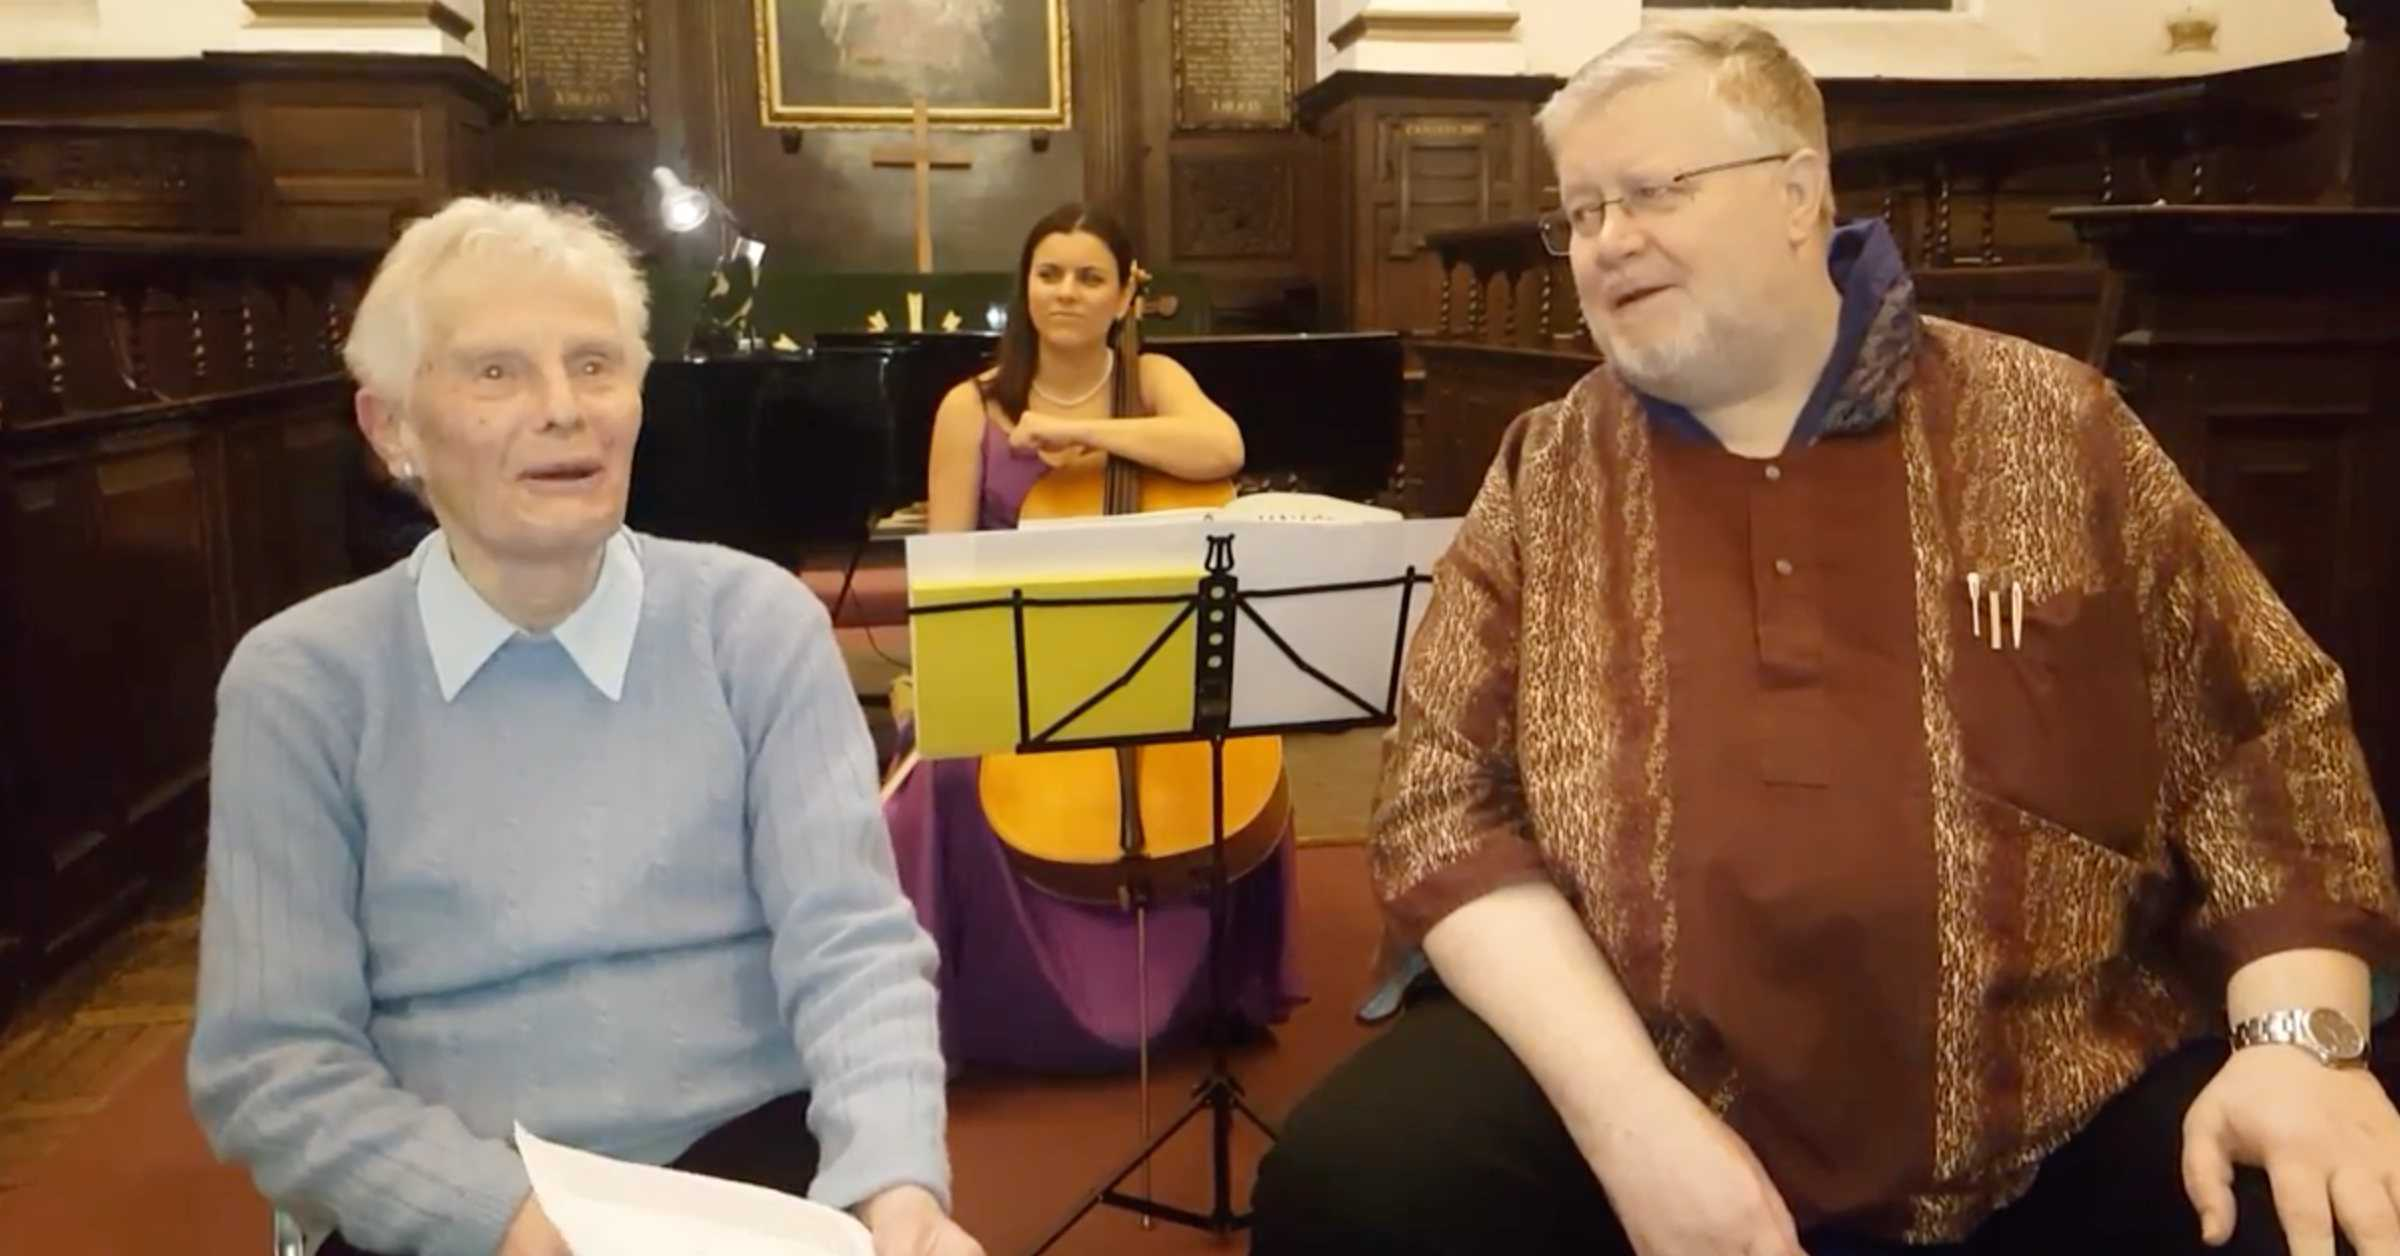 Algernon Ashton and Stephen Dodgson: A Brief Introduction to Two English Composers